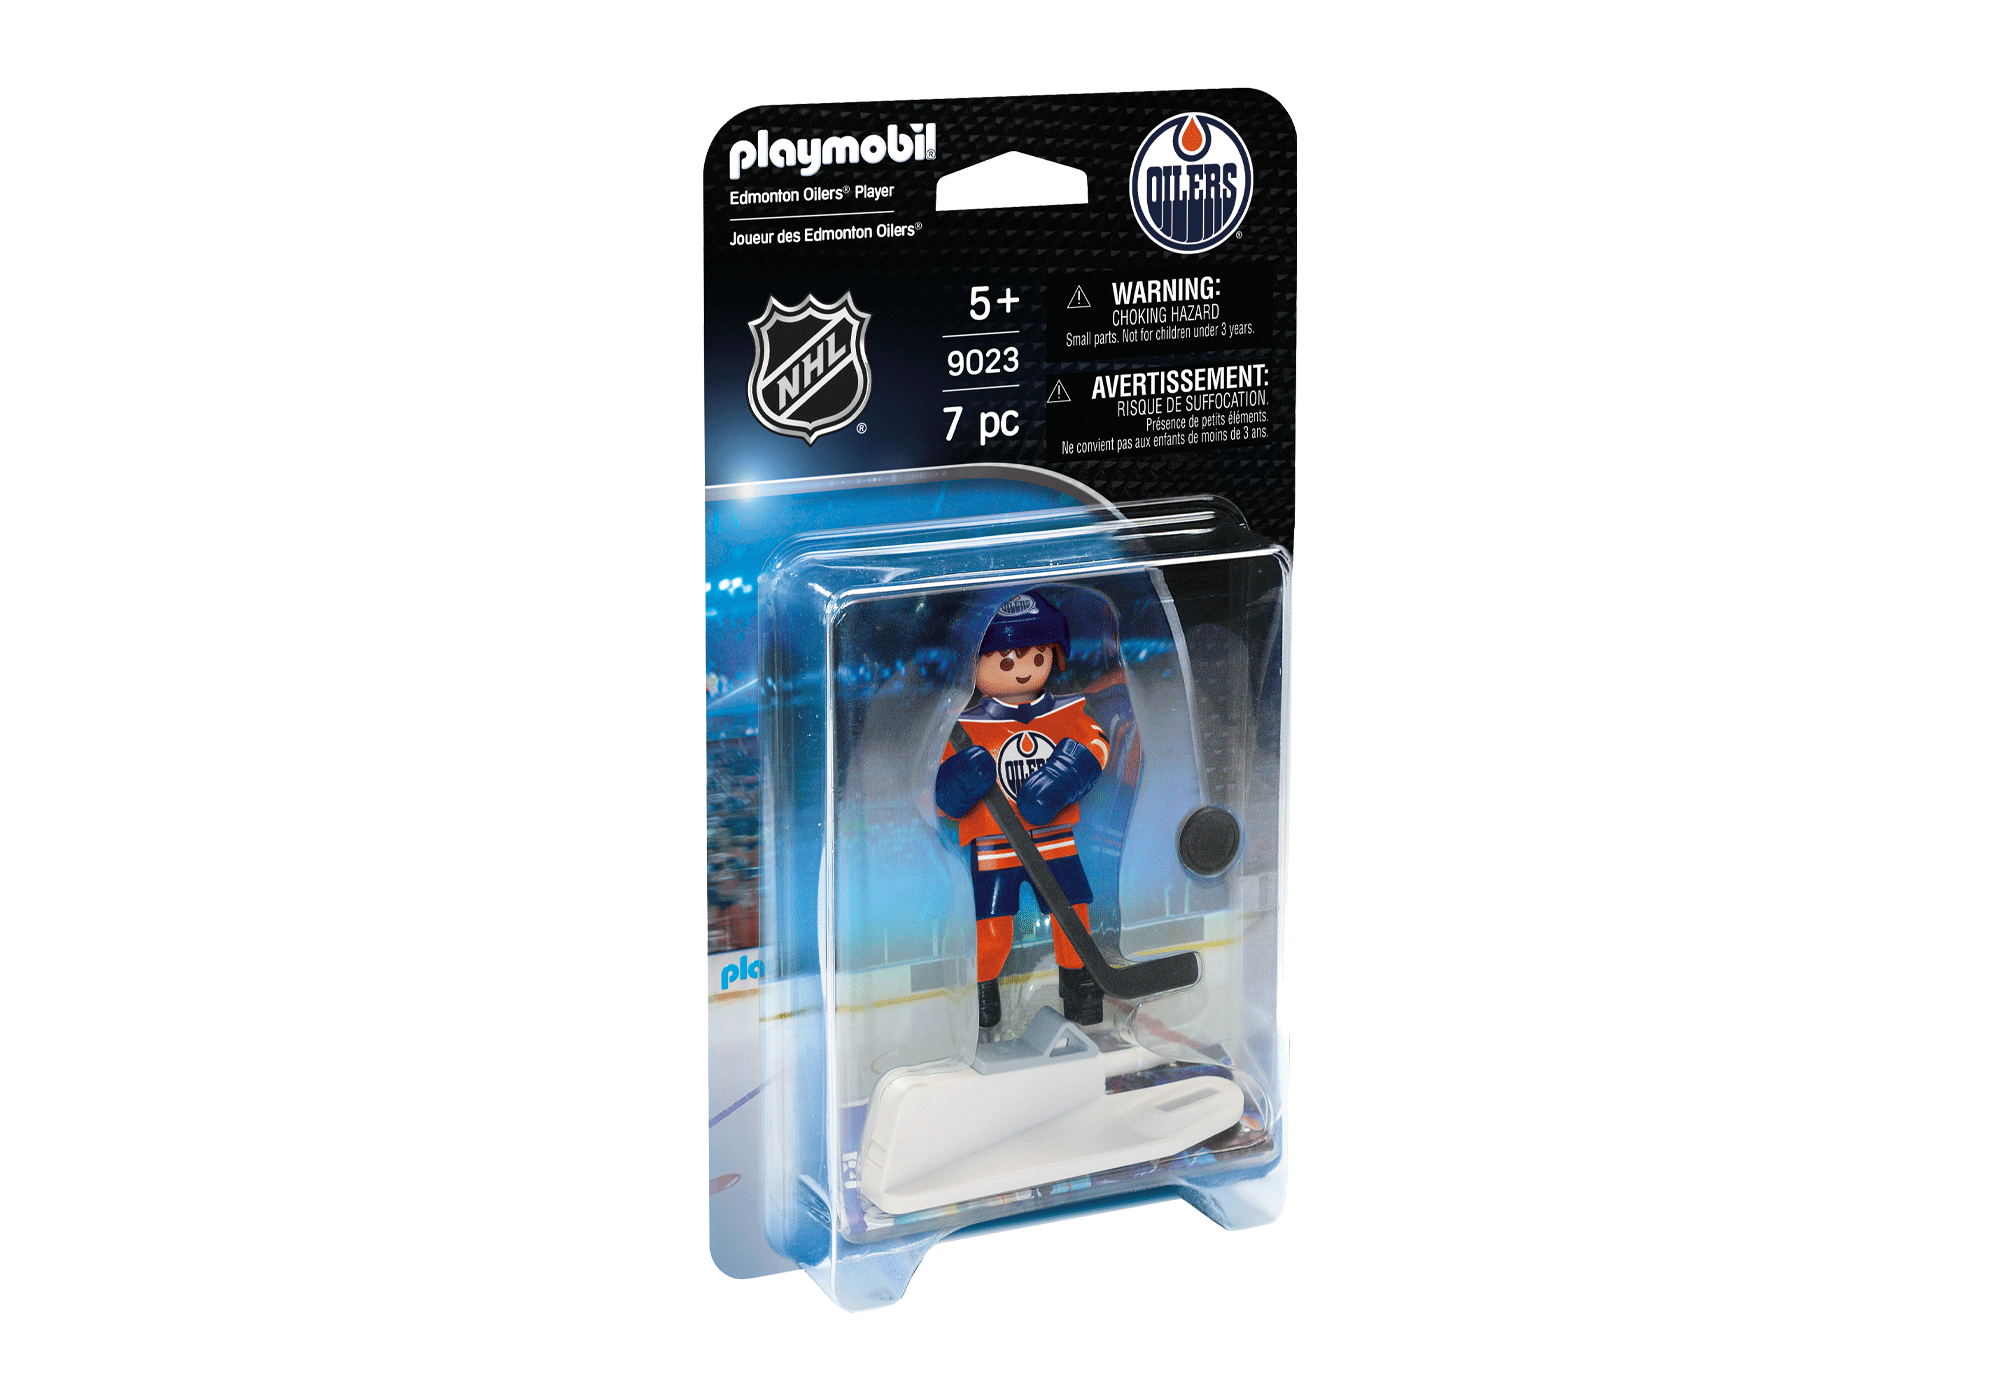 http://media.playmobil.com/i/playmobil/9023_product_box_front/NHL™ Edmonton Oilers™ Player